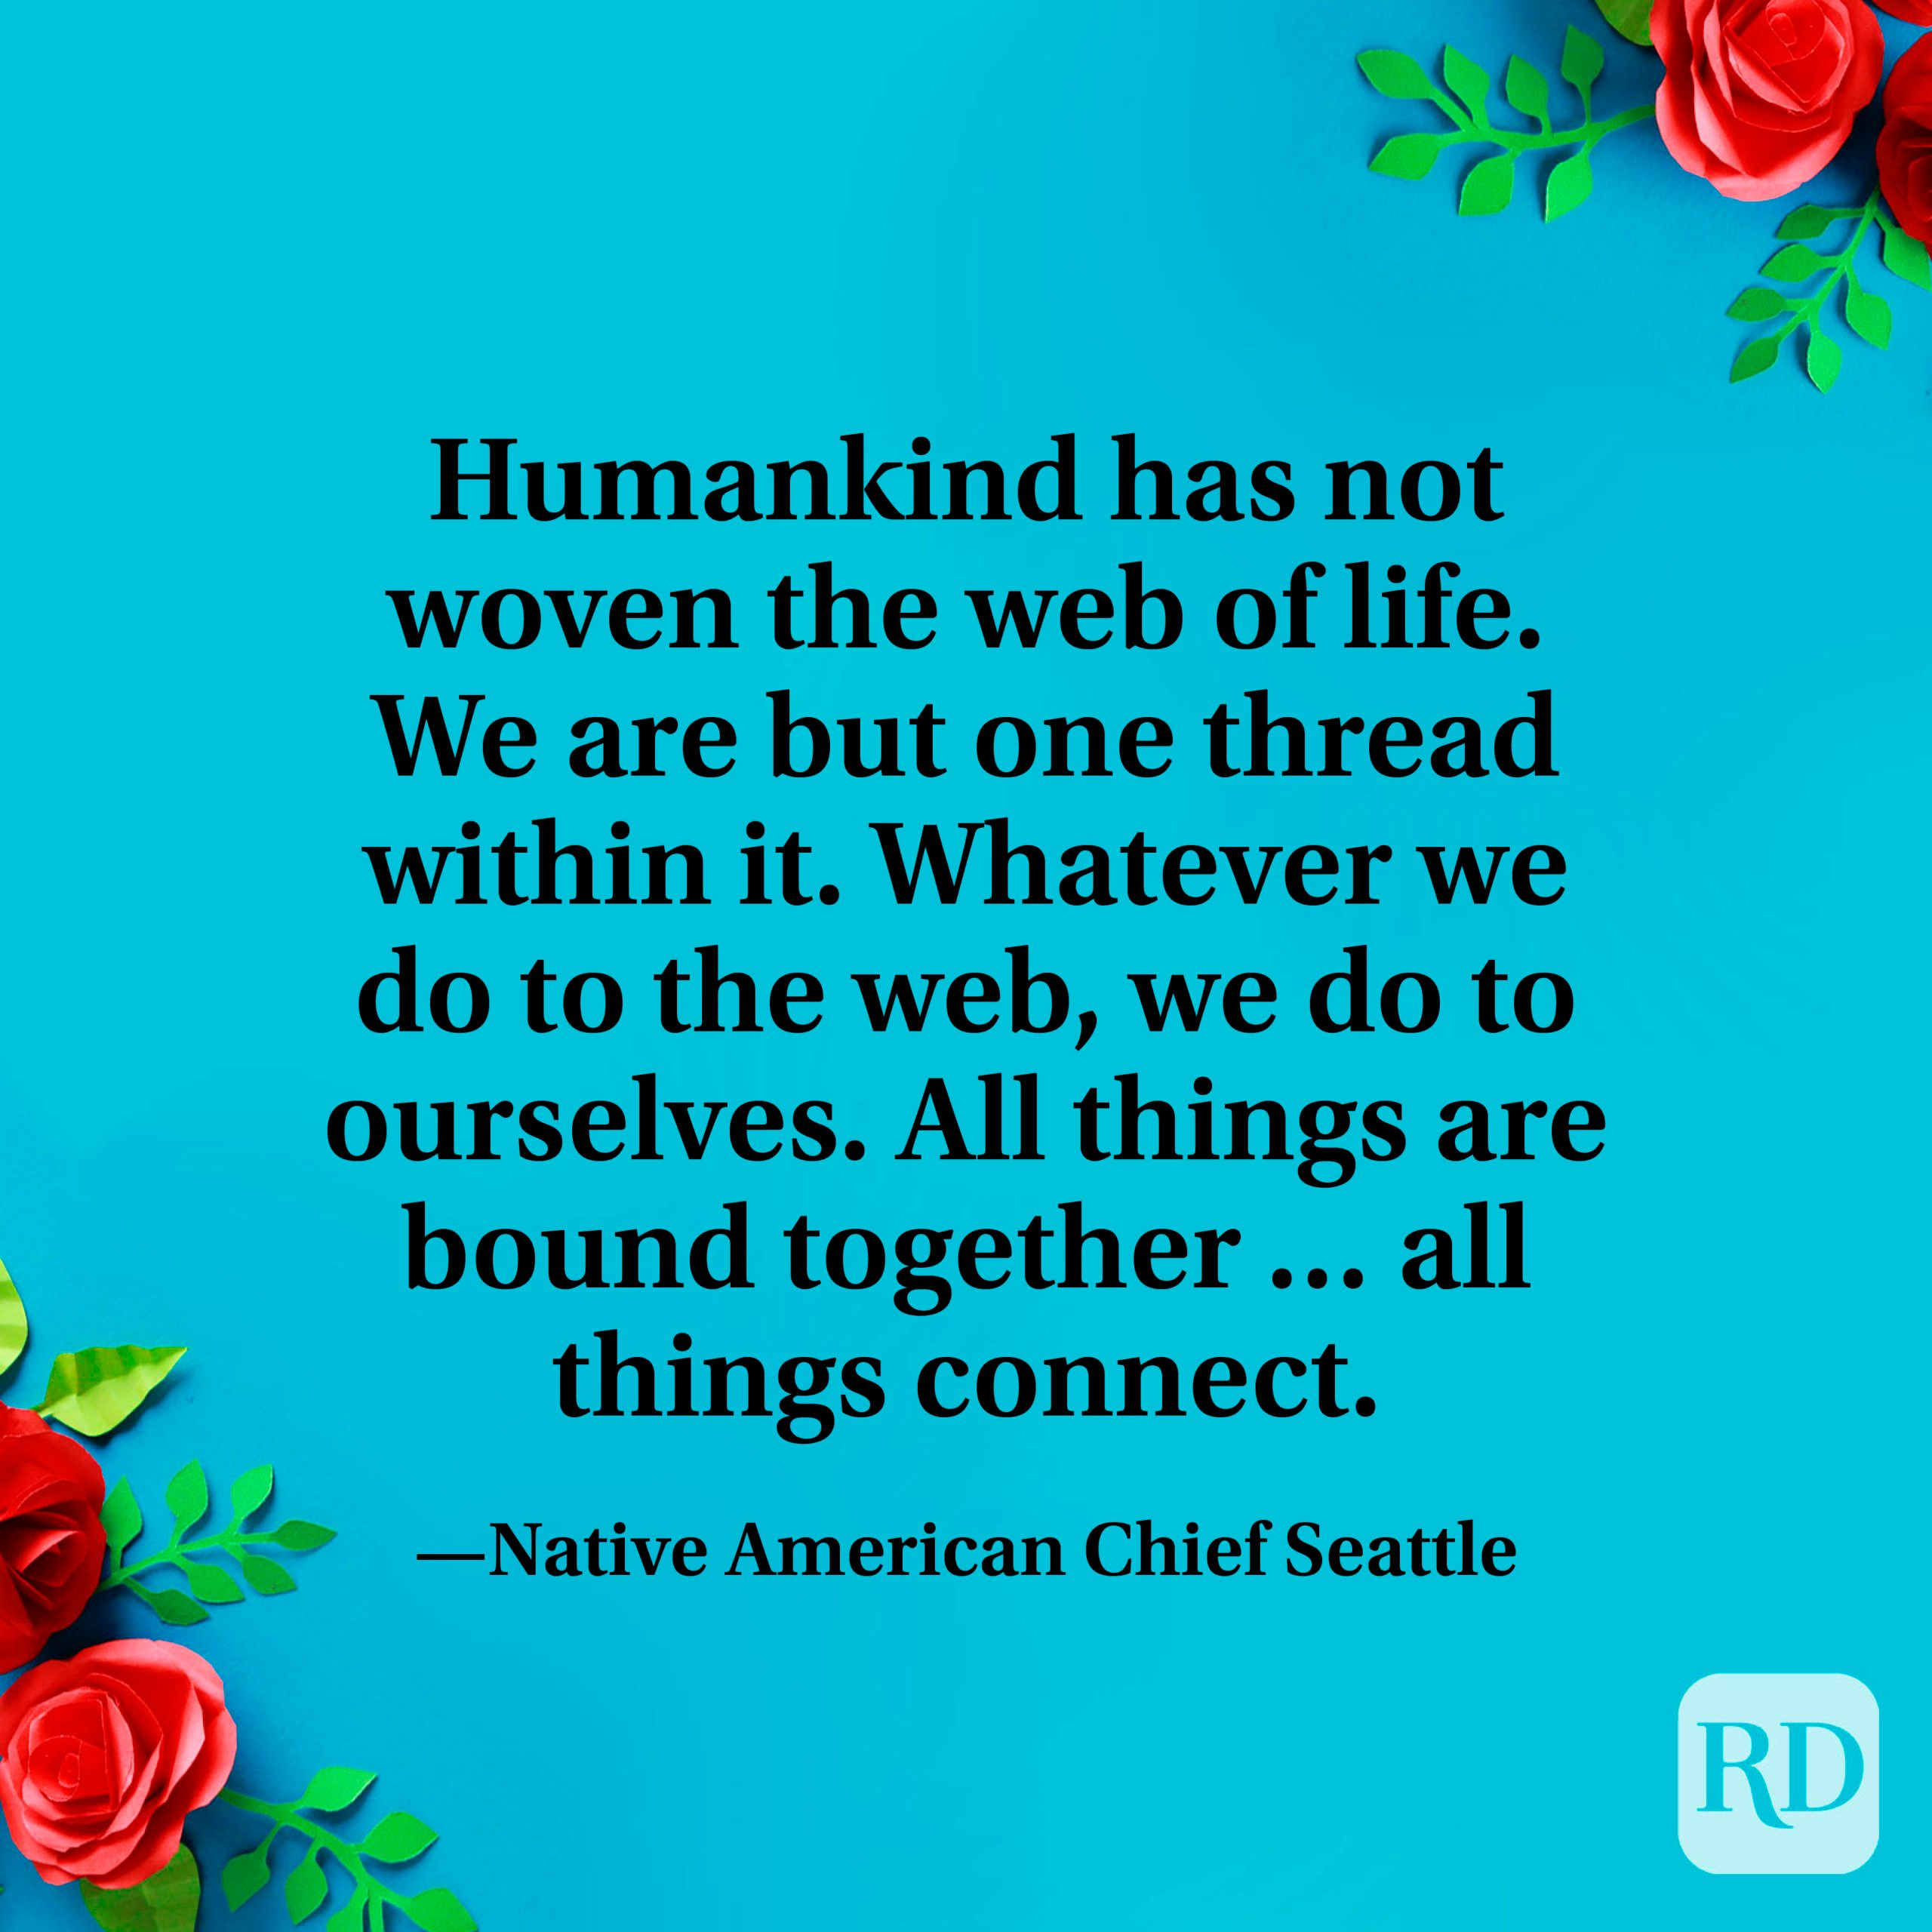 """""""Humankind has not woven the web of life. We are but one thread within it. Whatever we do to the web, we do to ourselves. All things are bound together … all things connect."""" —Native American Chief Seattle"""